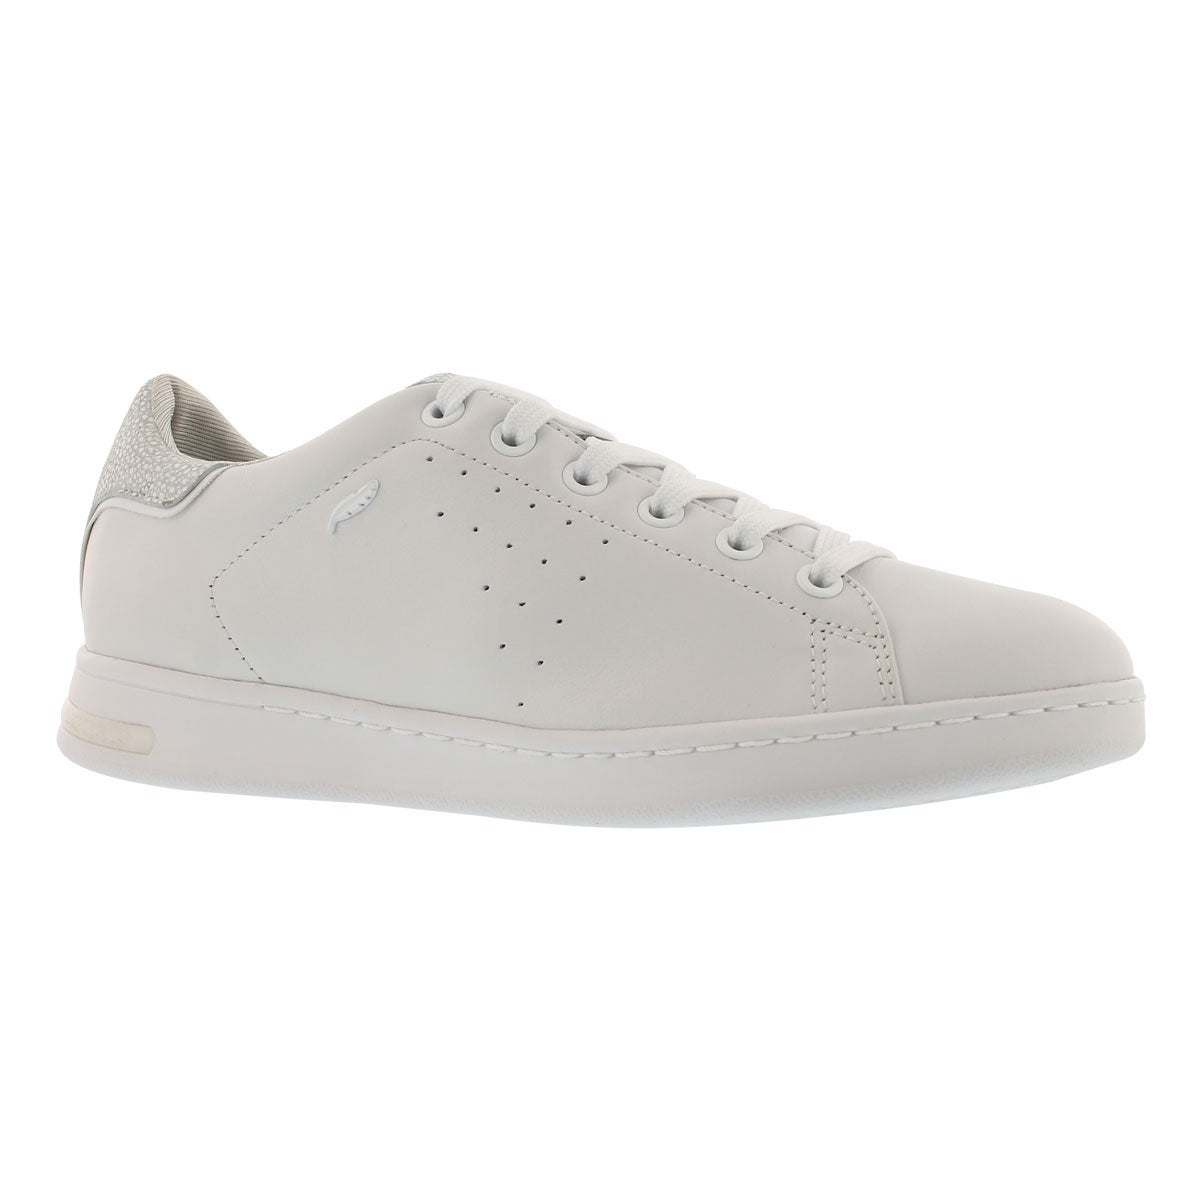 Women's JAYSEN white lace up sneakers